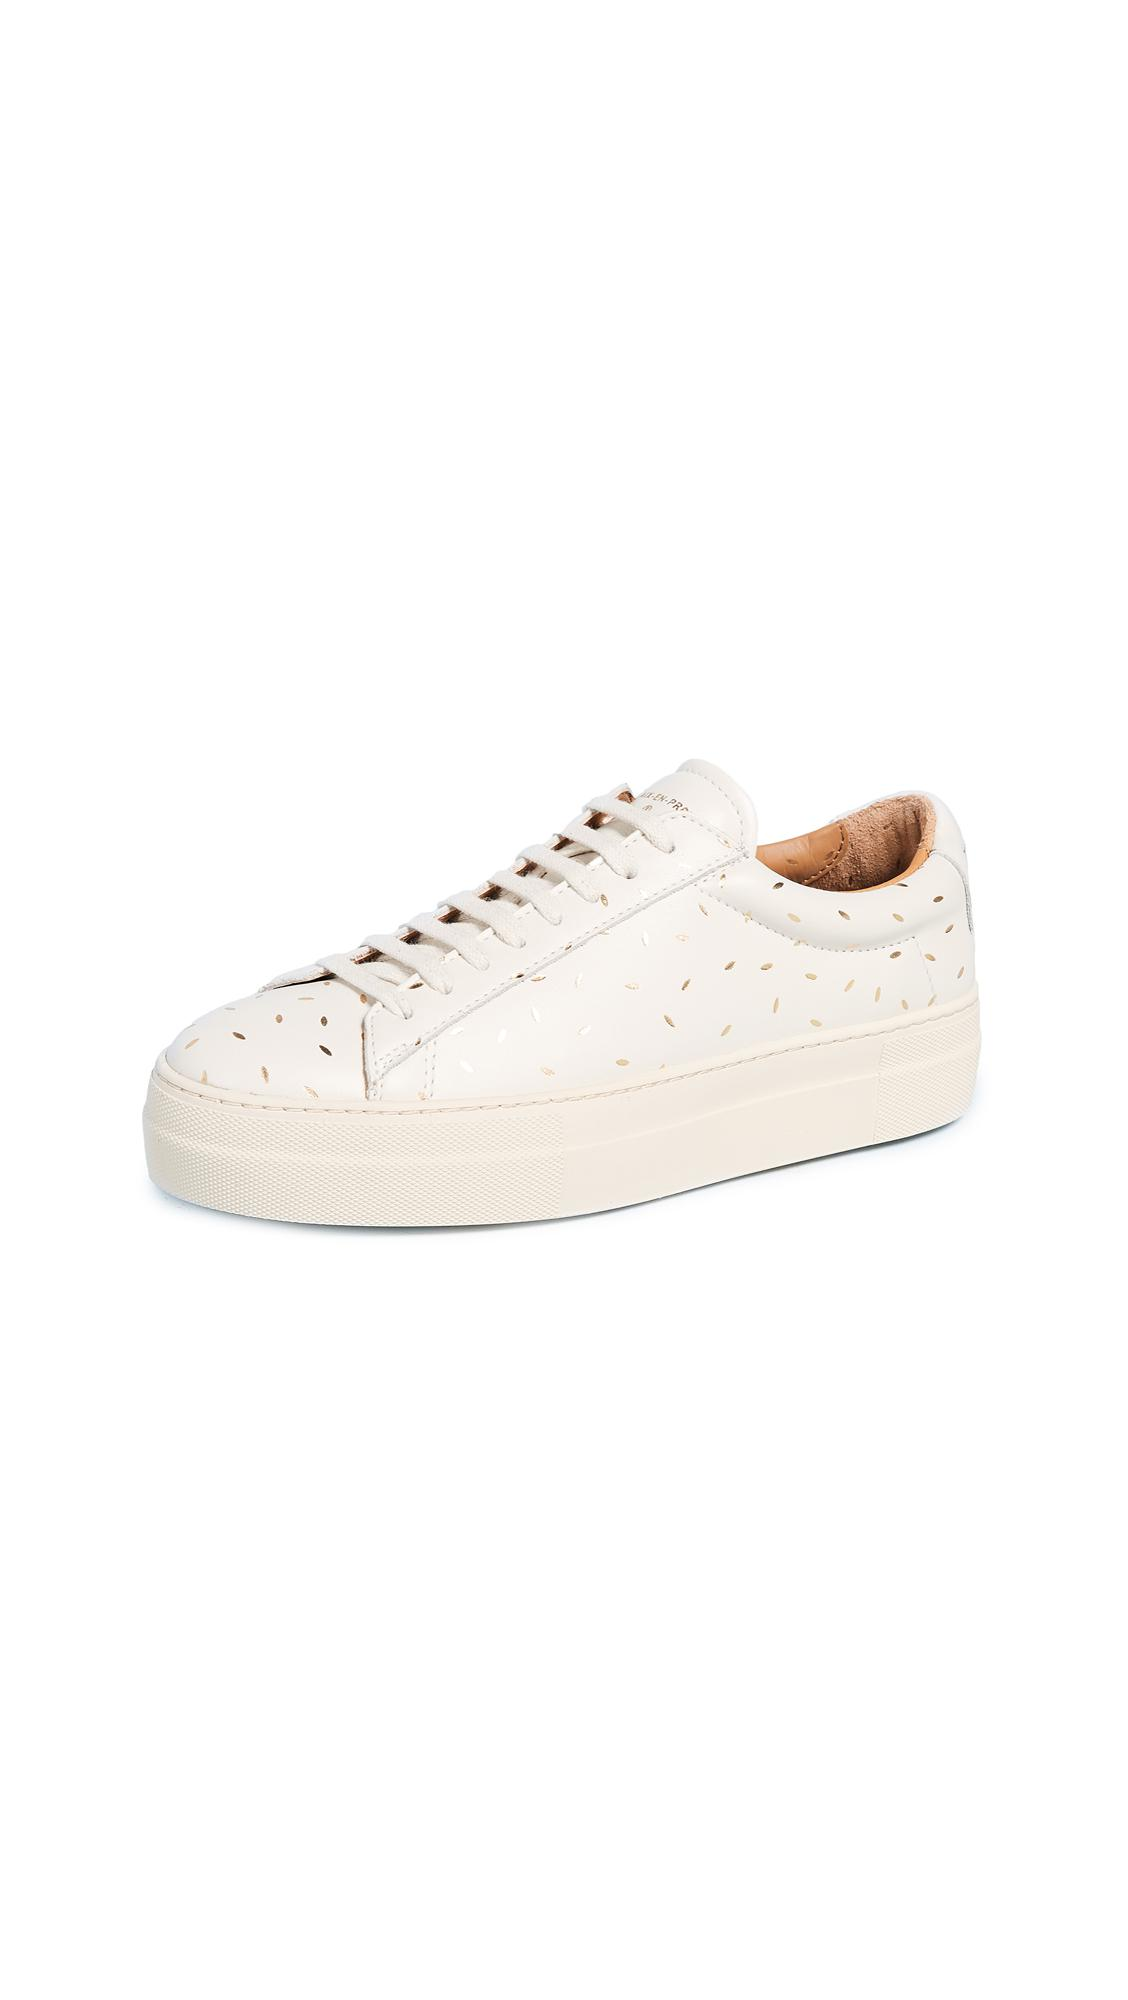 Zespà Leather Laceup Platform Sneakers in White